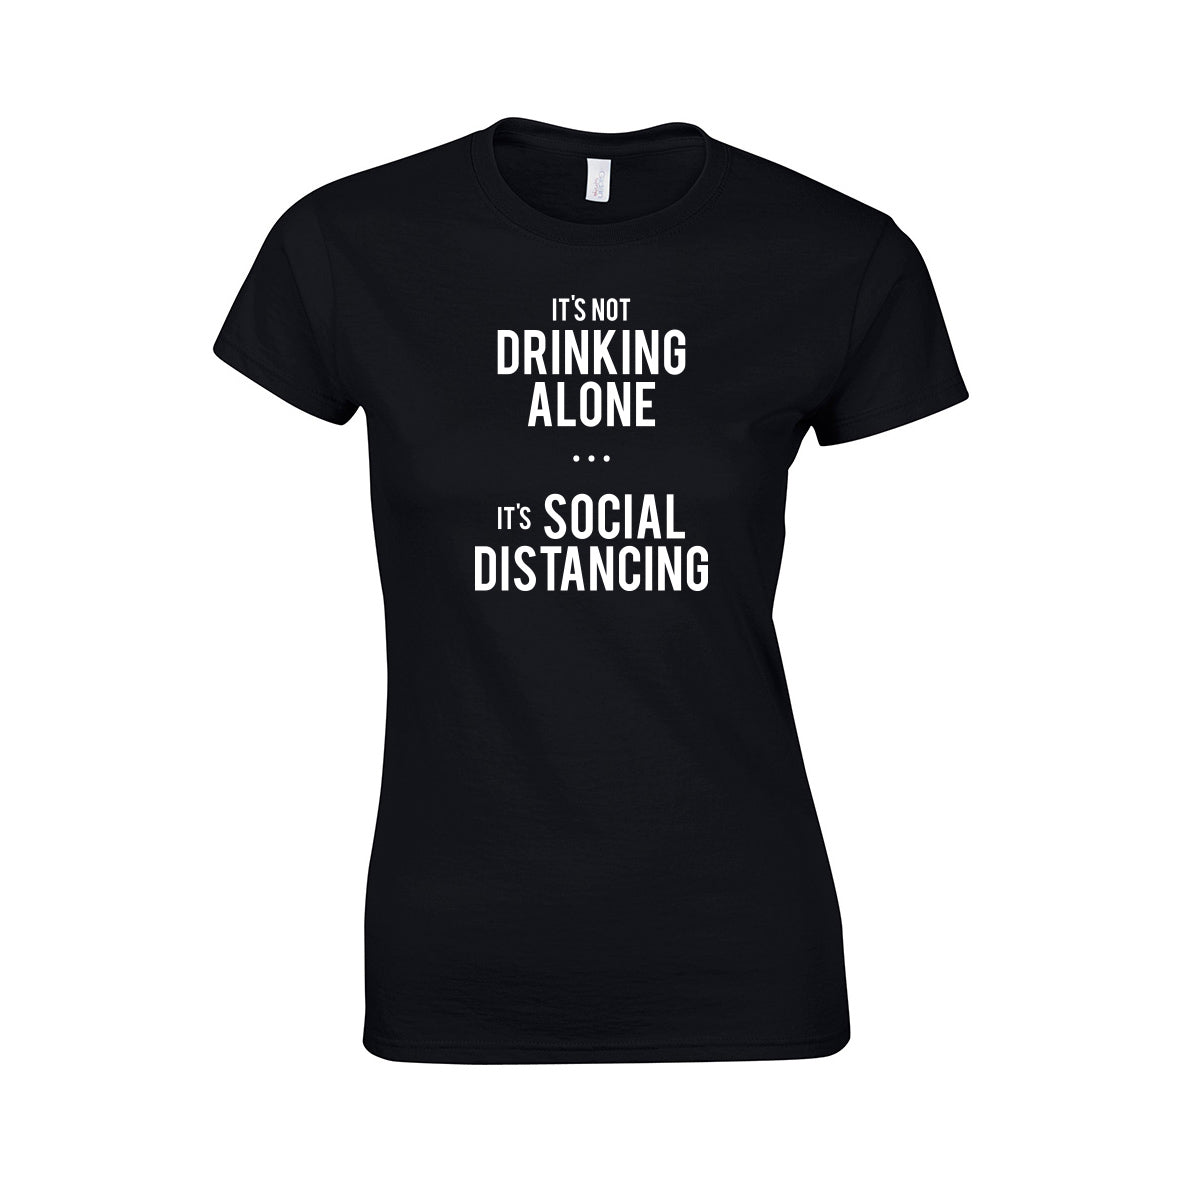 Its Not Drinking Alone (Social Distancing) Make Original Black T-Shirt Womens